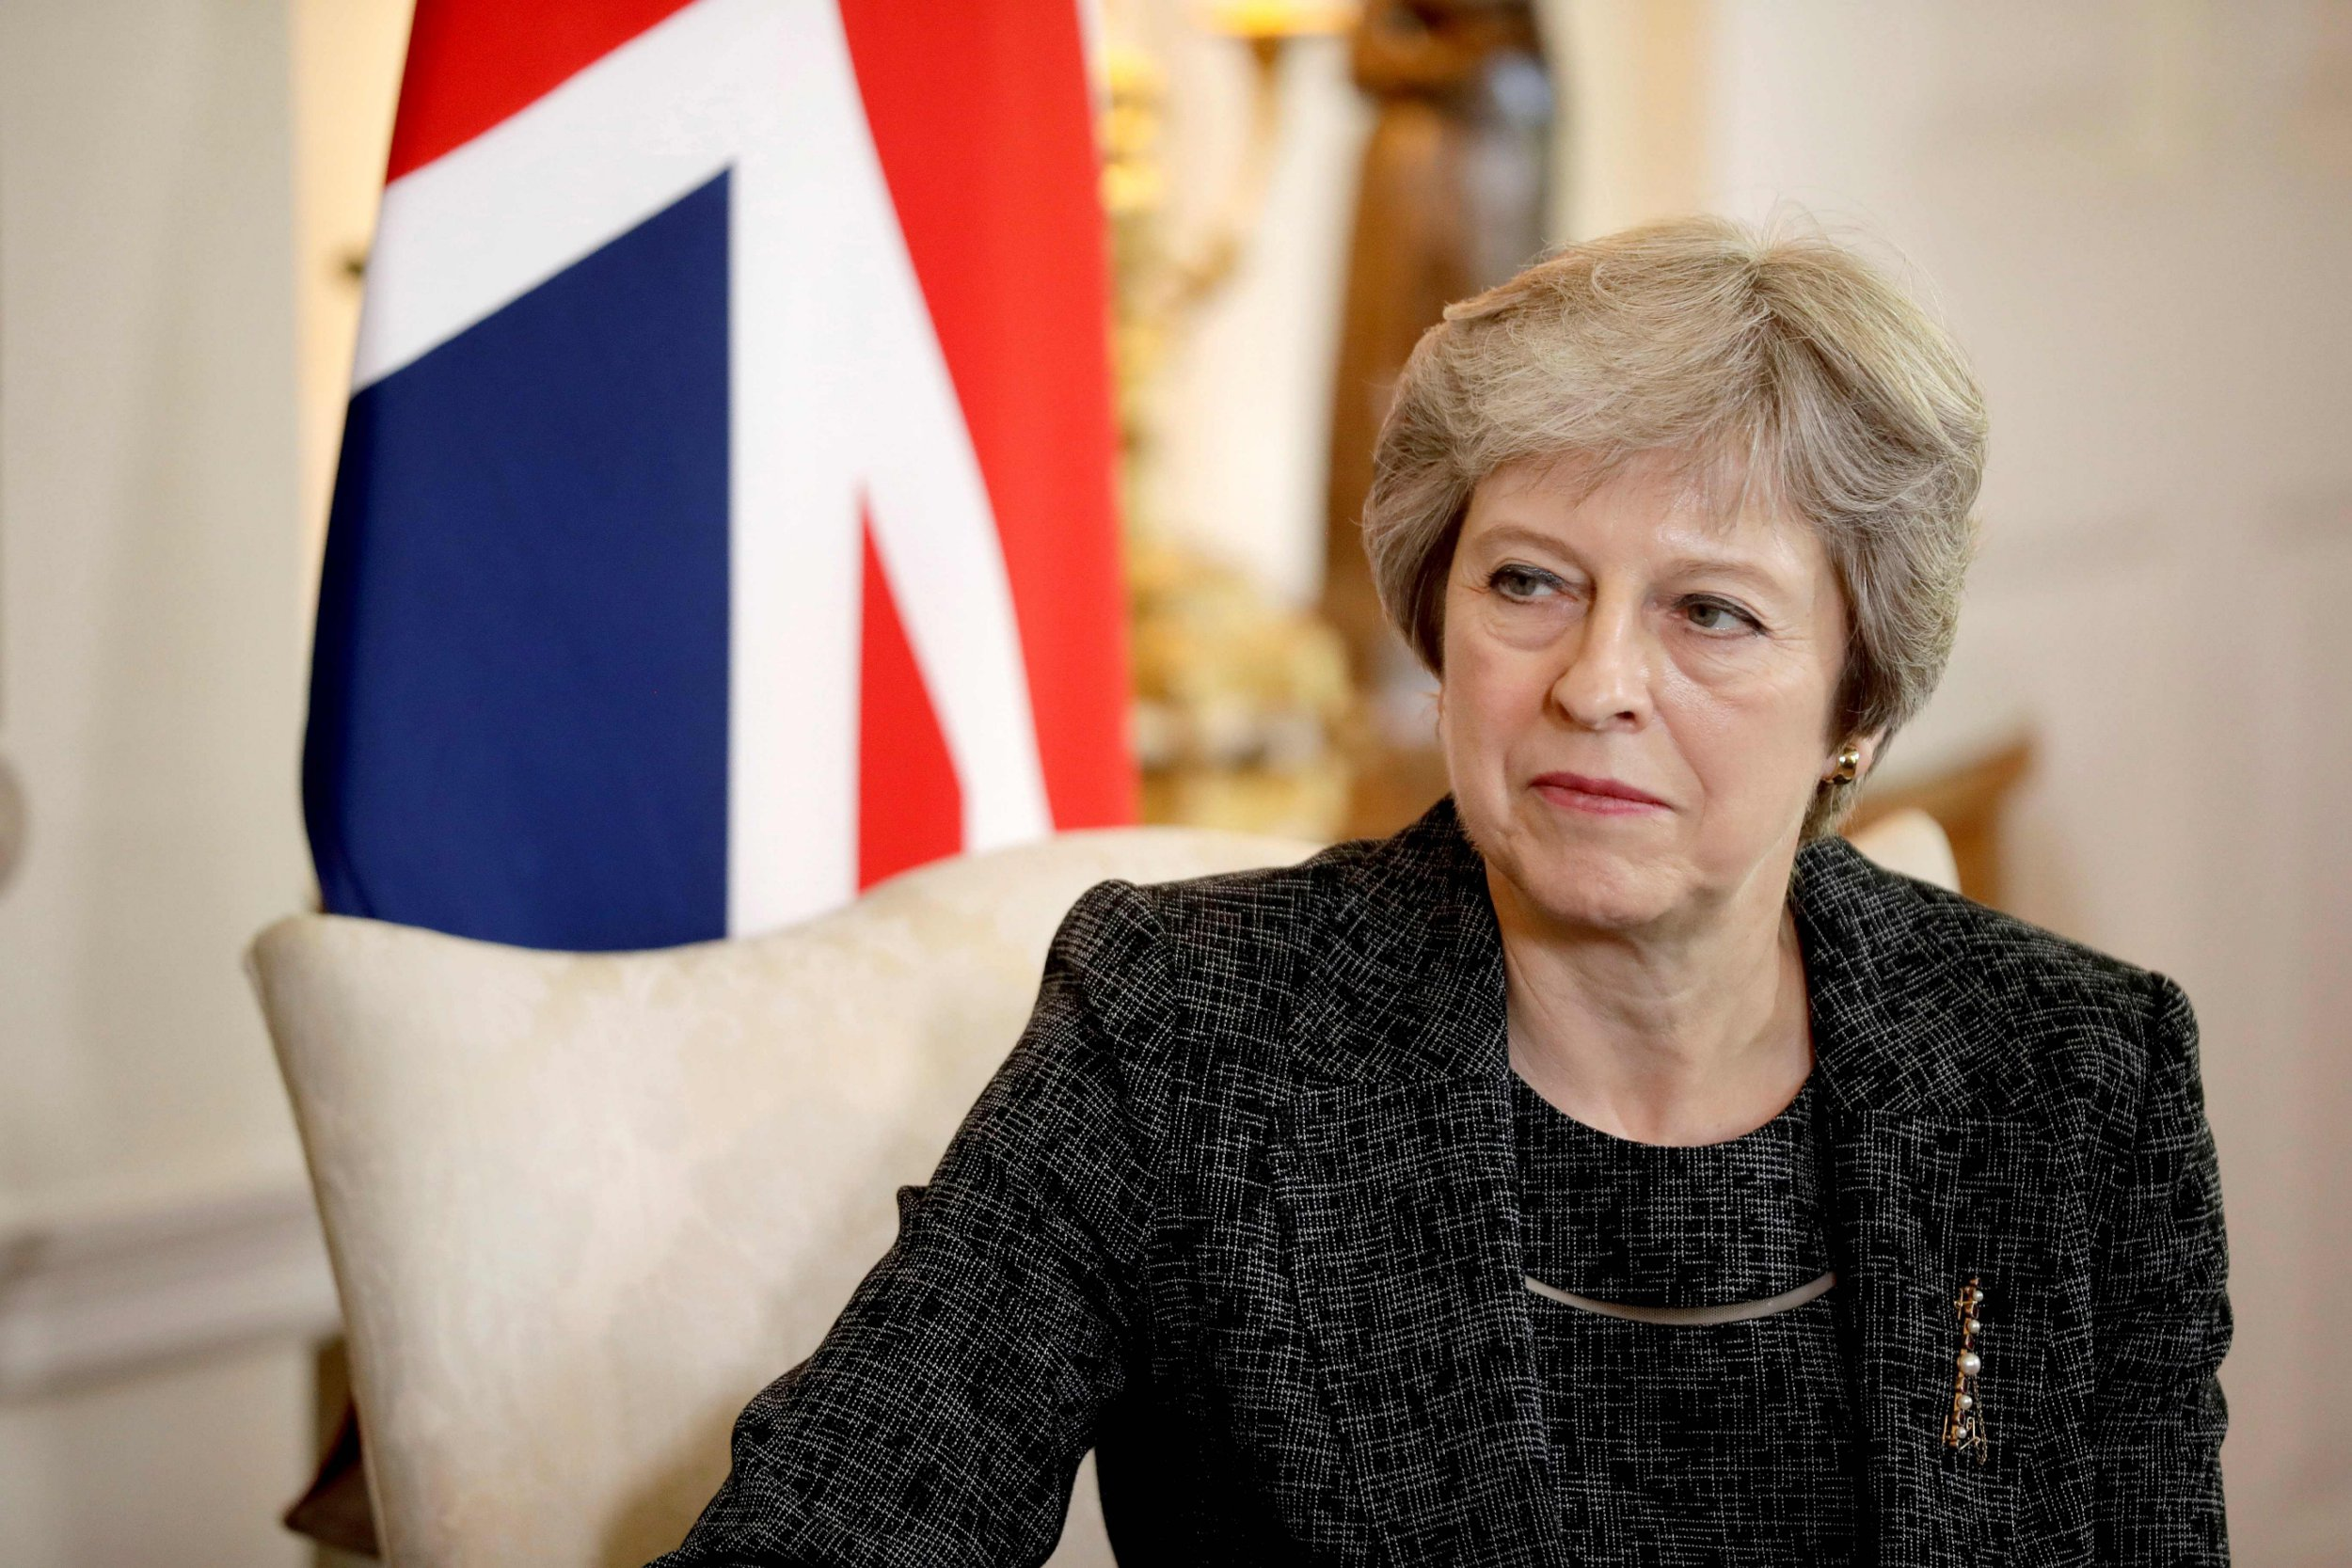 Britain's Prime Minister Theresa May reacts during her meeting with the Emir of Qatar, Sheikh Tamim Bin Hamad al-Thani, at 10 Downing Street in London on July 24, 2018. / AFP PHOTO / POOL / Matt DunhamMATT DUNHAM/AFP/Getty Images